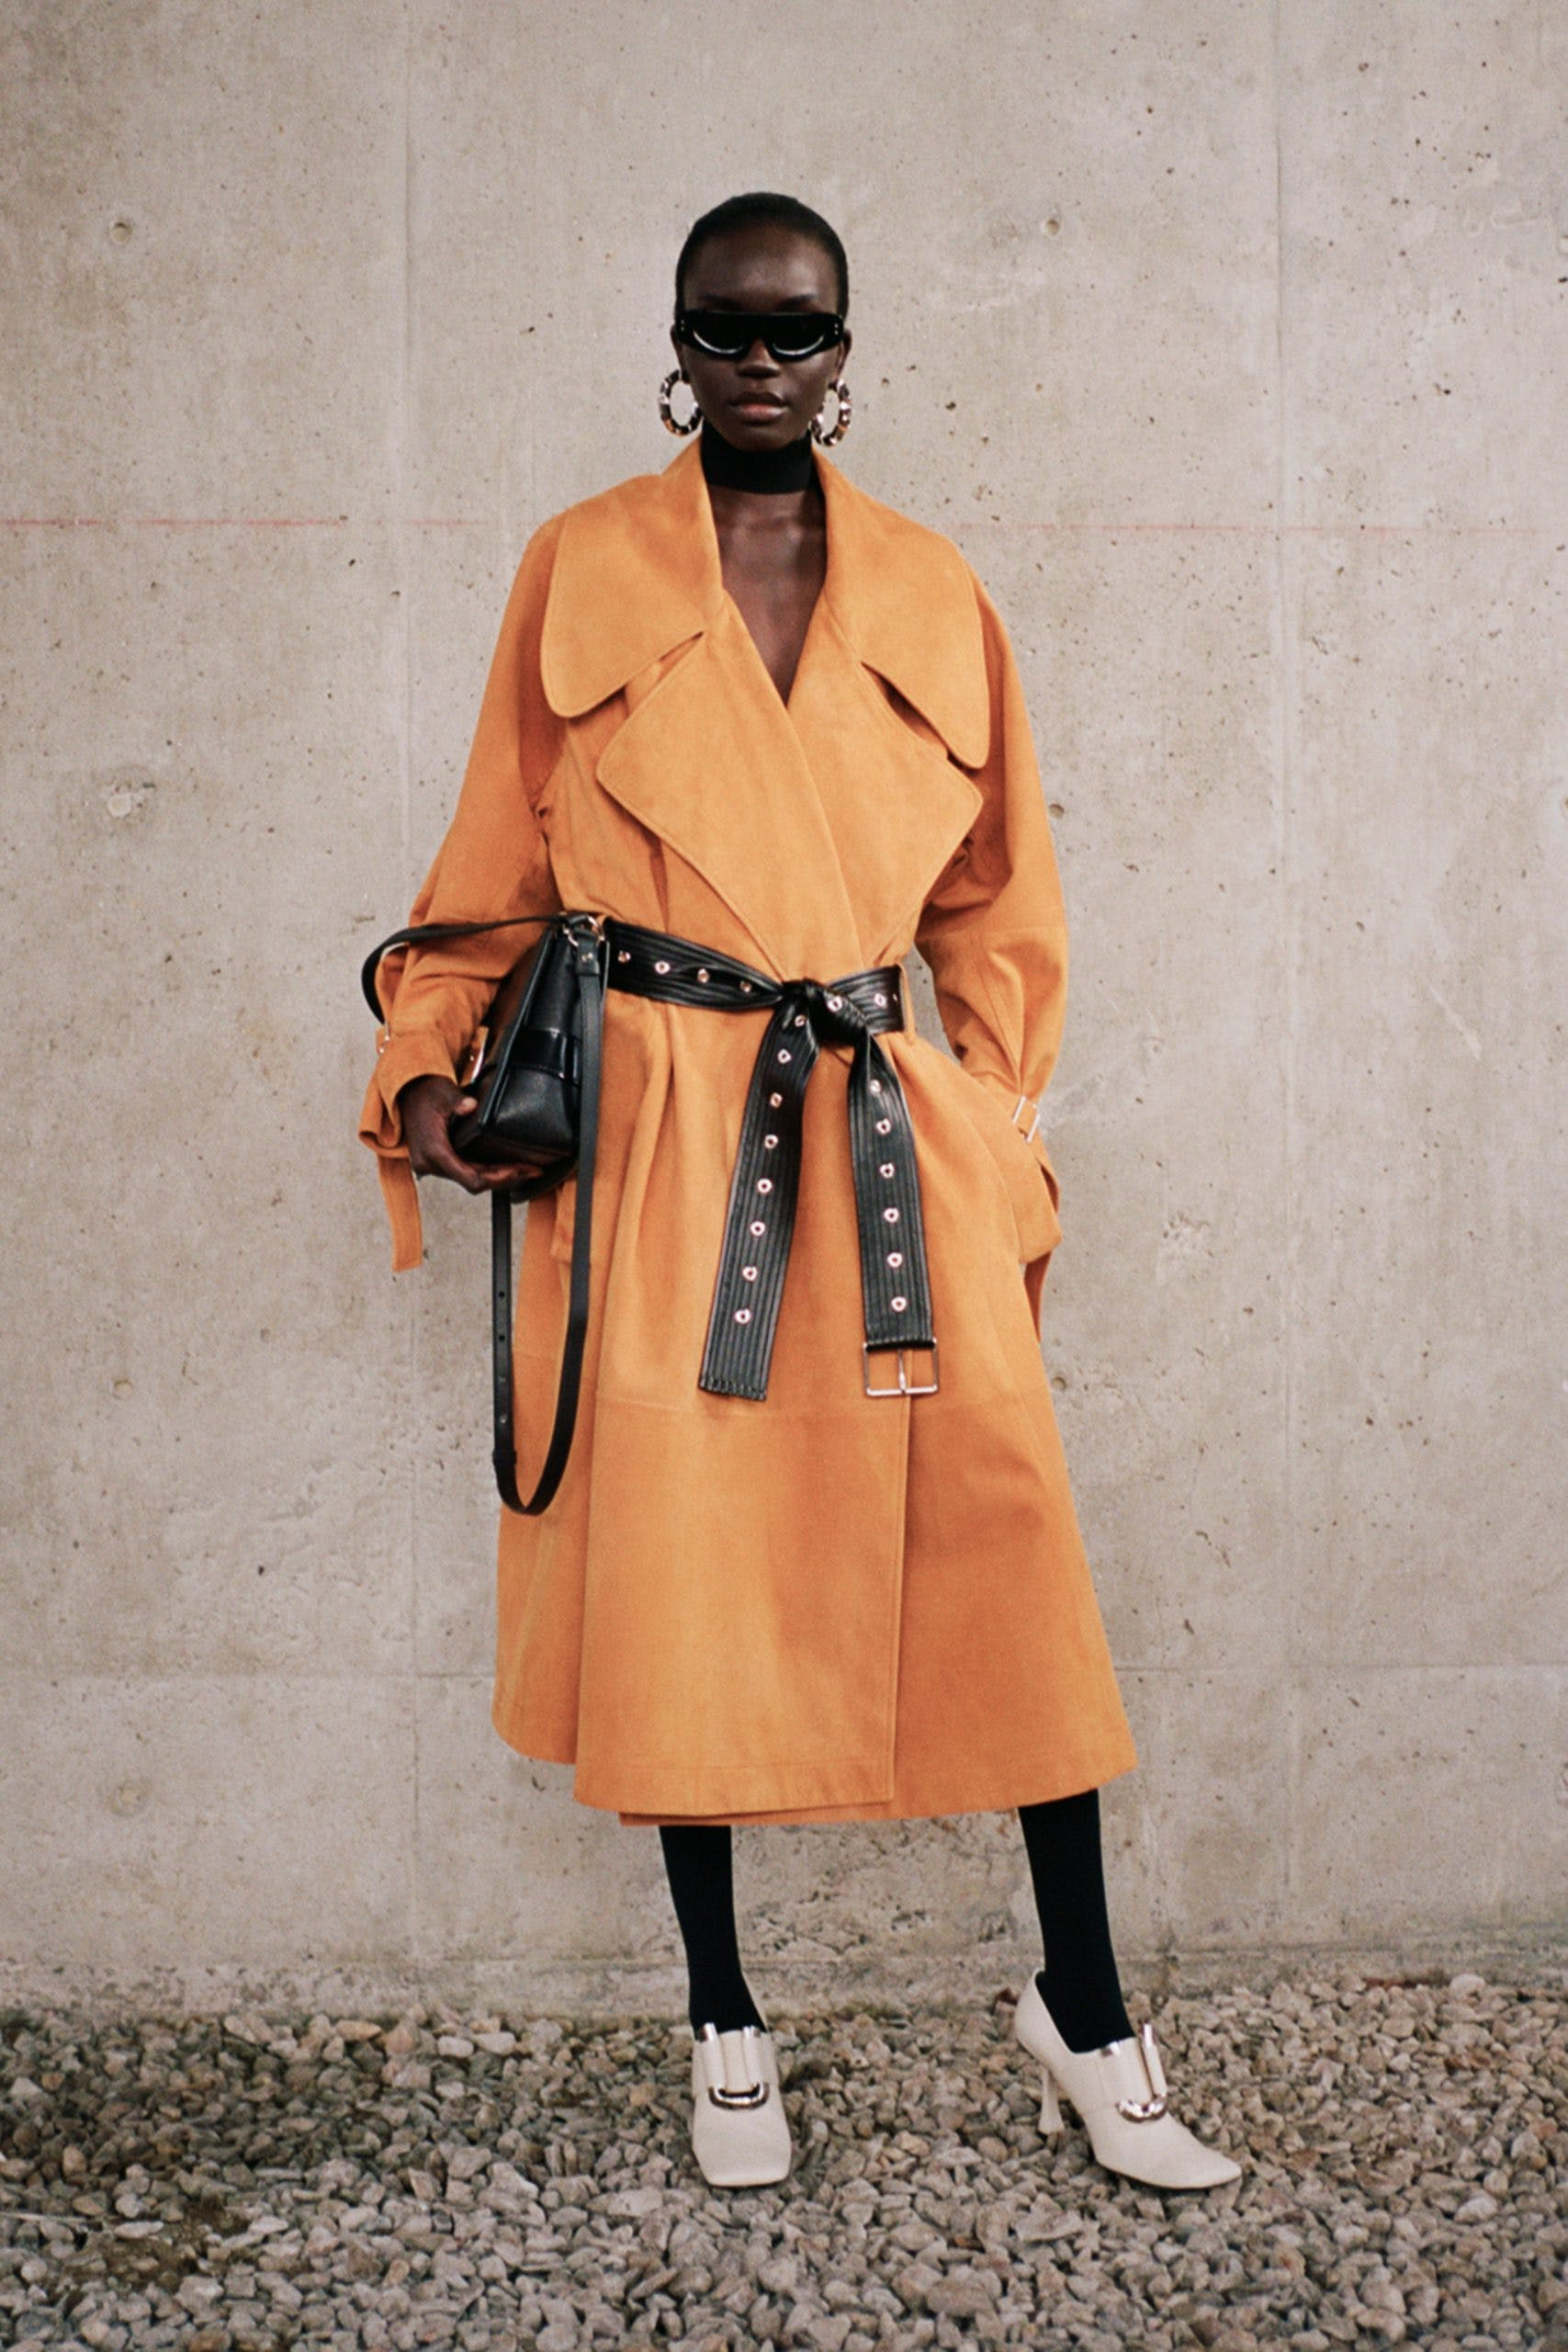 proenza schouler pf20 orange oversized collar black belted coat white square toe pumps